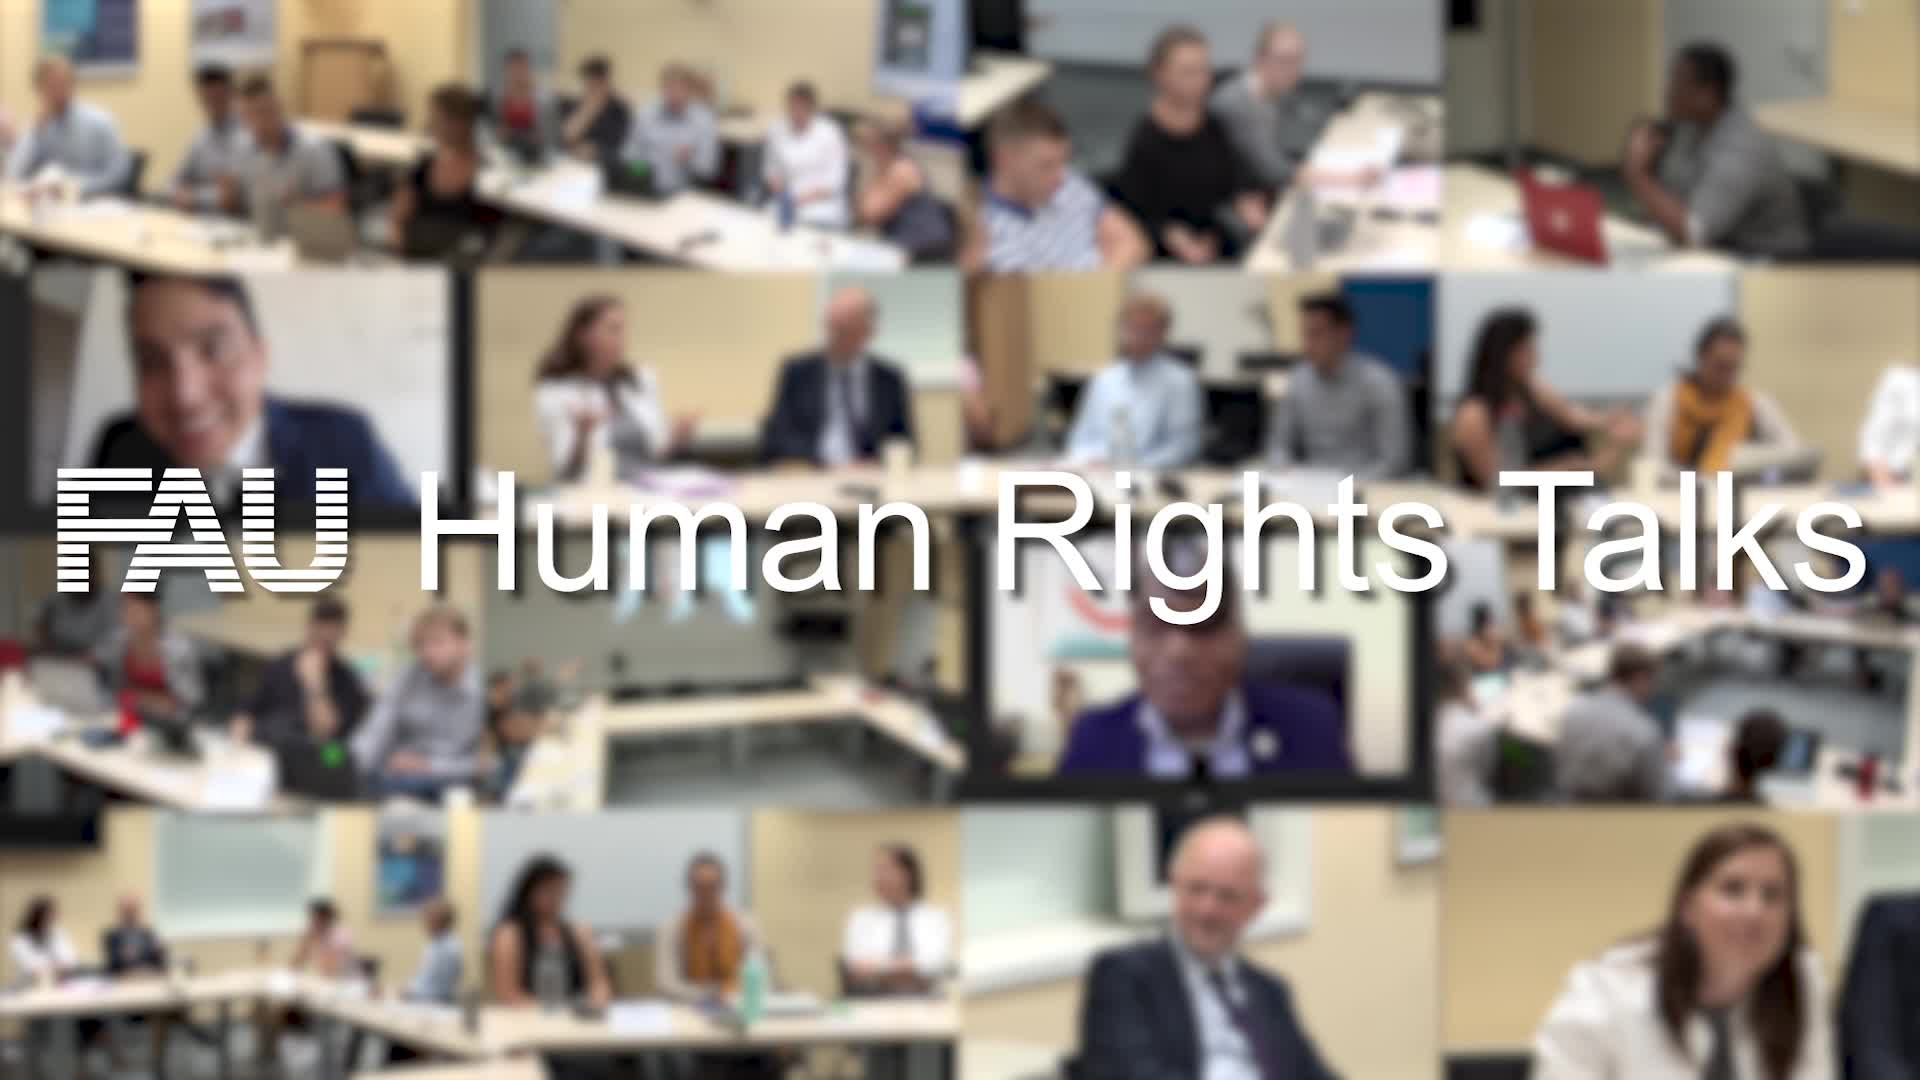 FAU Human Rights Talks - What you need to know preview image